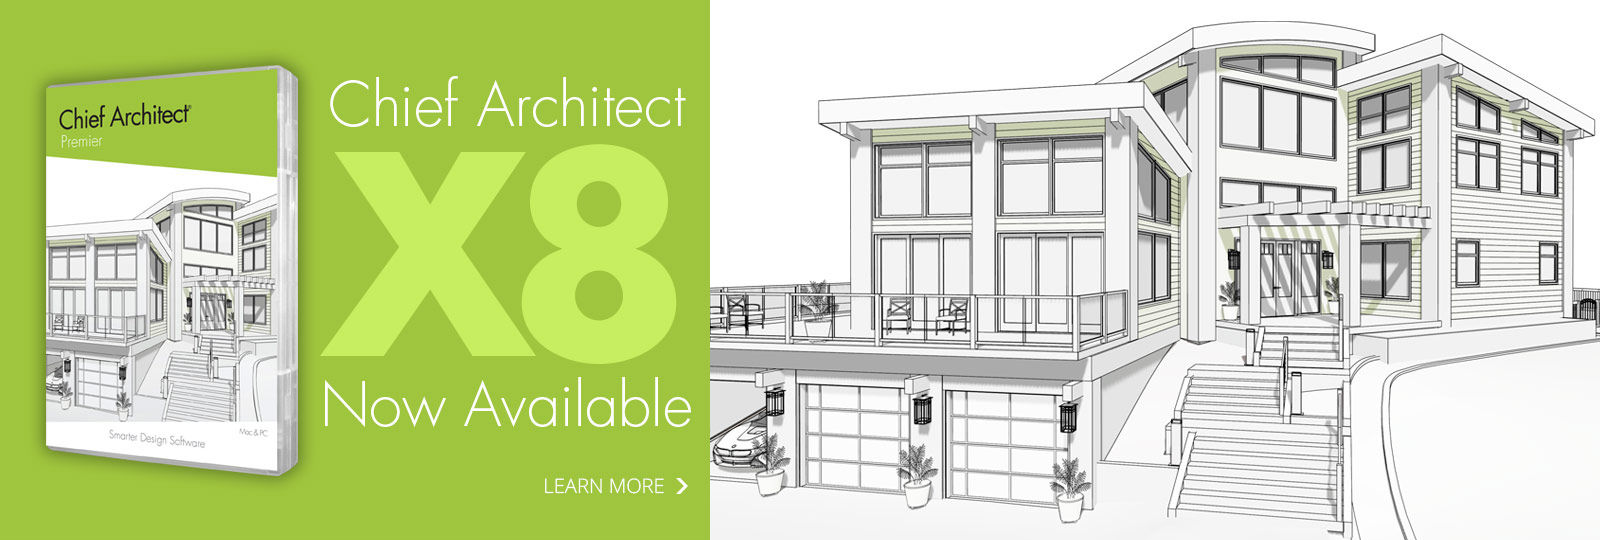 Architectural home design software by chief architect Architect software